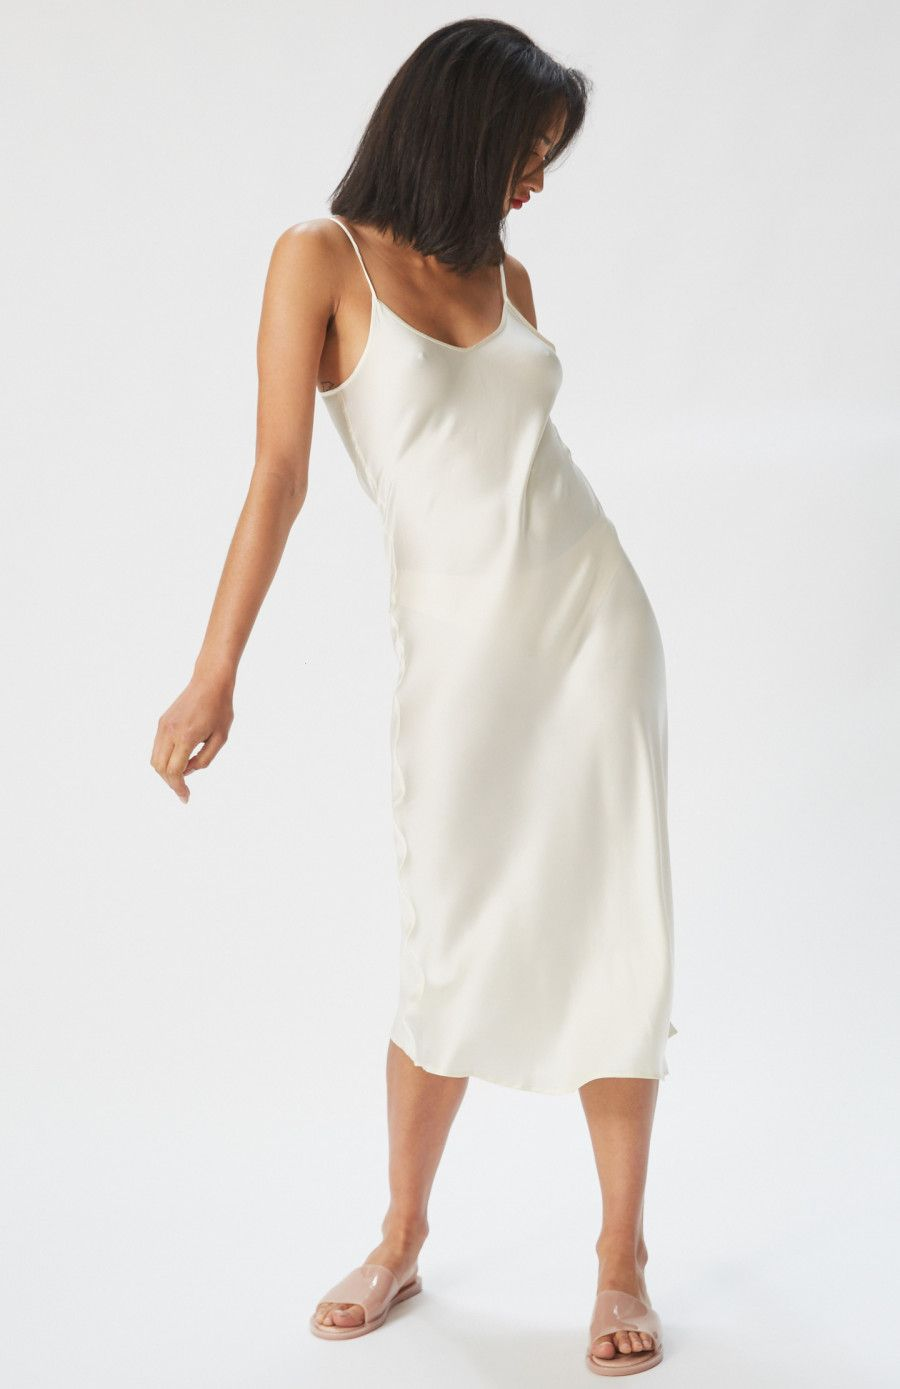 90s Silk Slip Dress In Ivory By Silk Laundry Ethically Made In A Transparent Supply Chain And The Perfect Special Event Slip Dress Silk Slip Dress Silk Slip [ 1389 x 900 Pixel ]